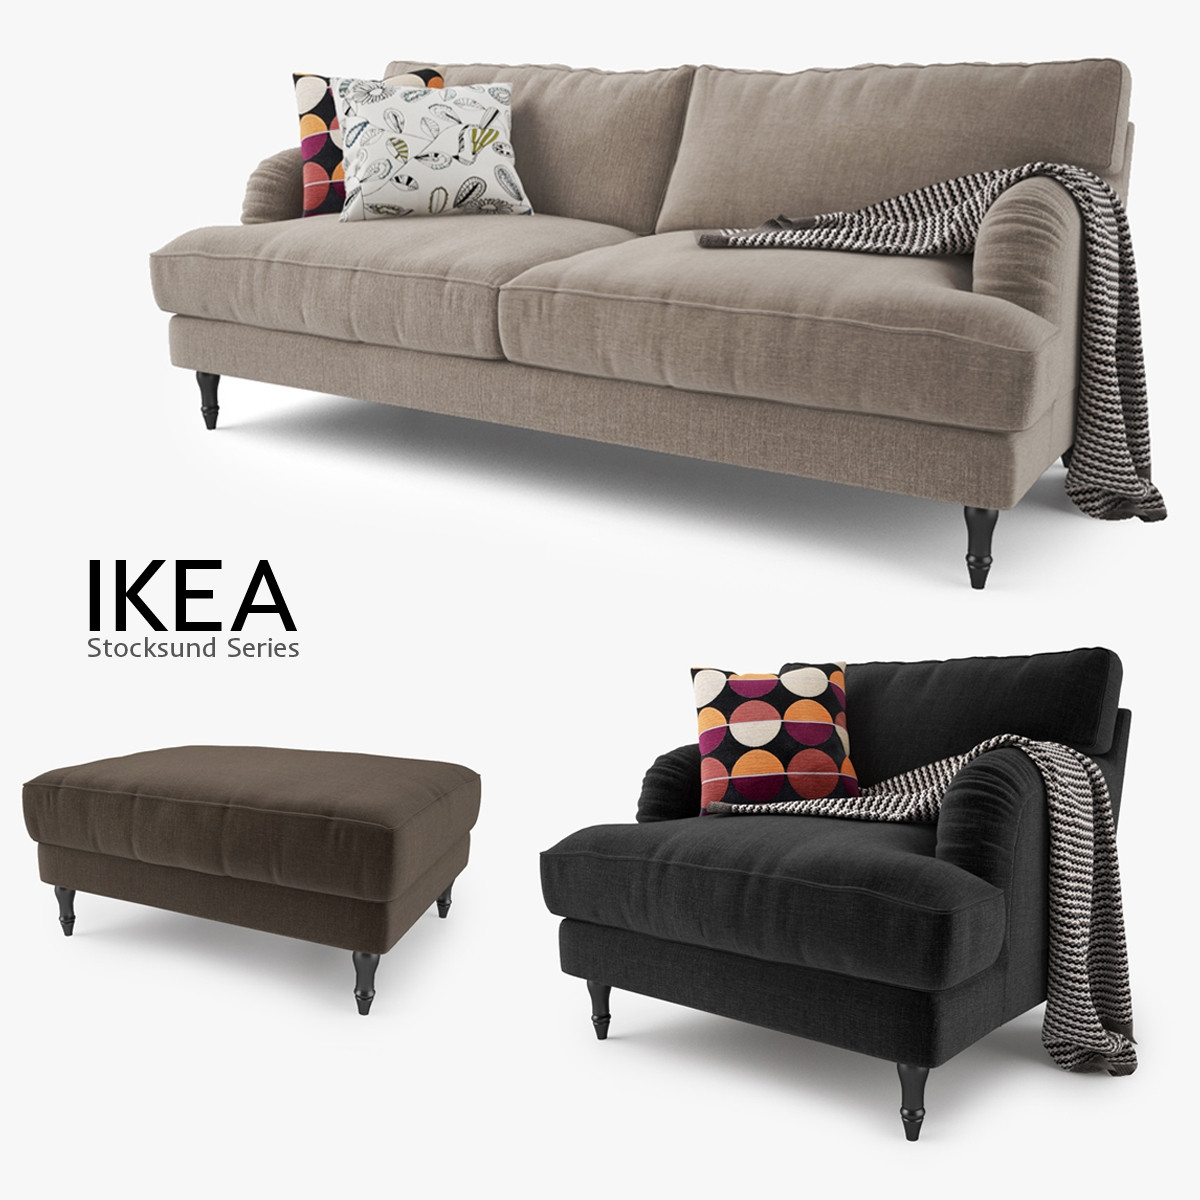 Stocksund Series Sofa Chair Max Throughout Sofa Chairs Ikea (View 15 of 15)